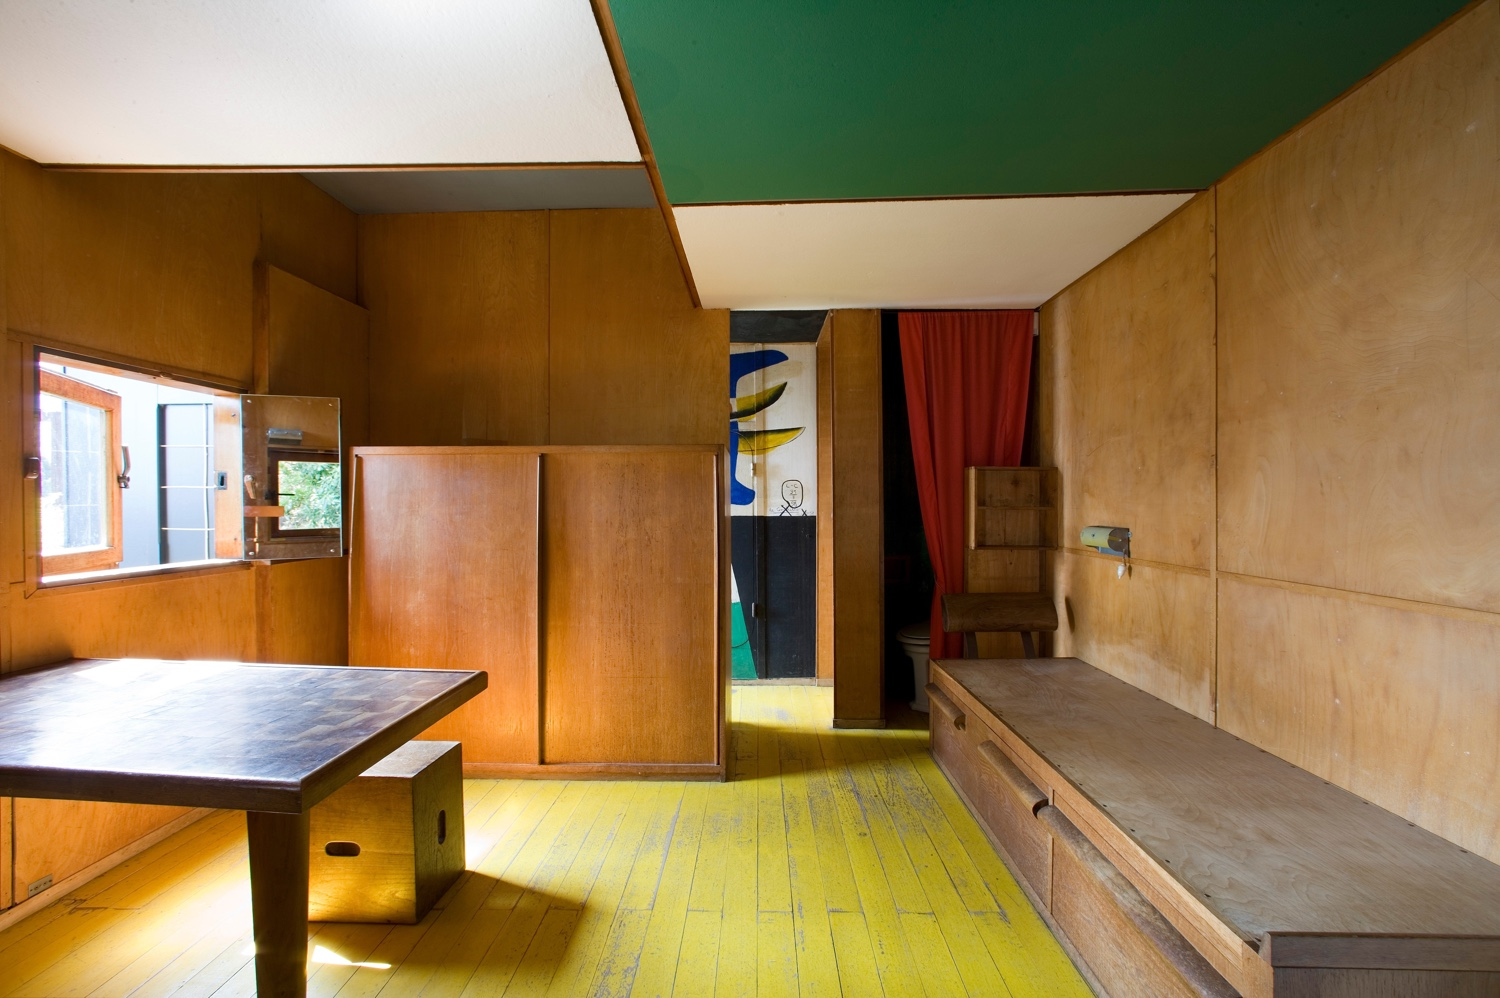 17 le corbusier buildings added to unesco world heritage list. Black Bedroom Furniture Sets. Home Design Ideas